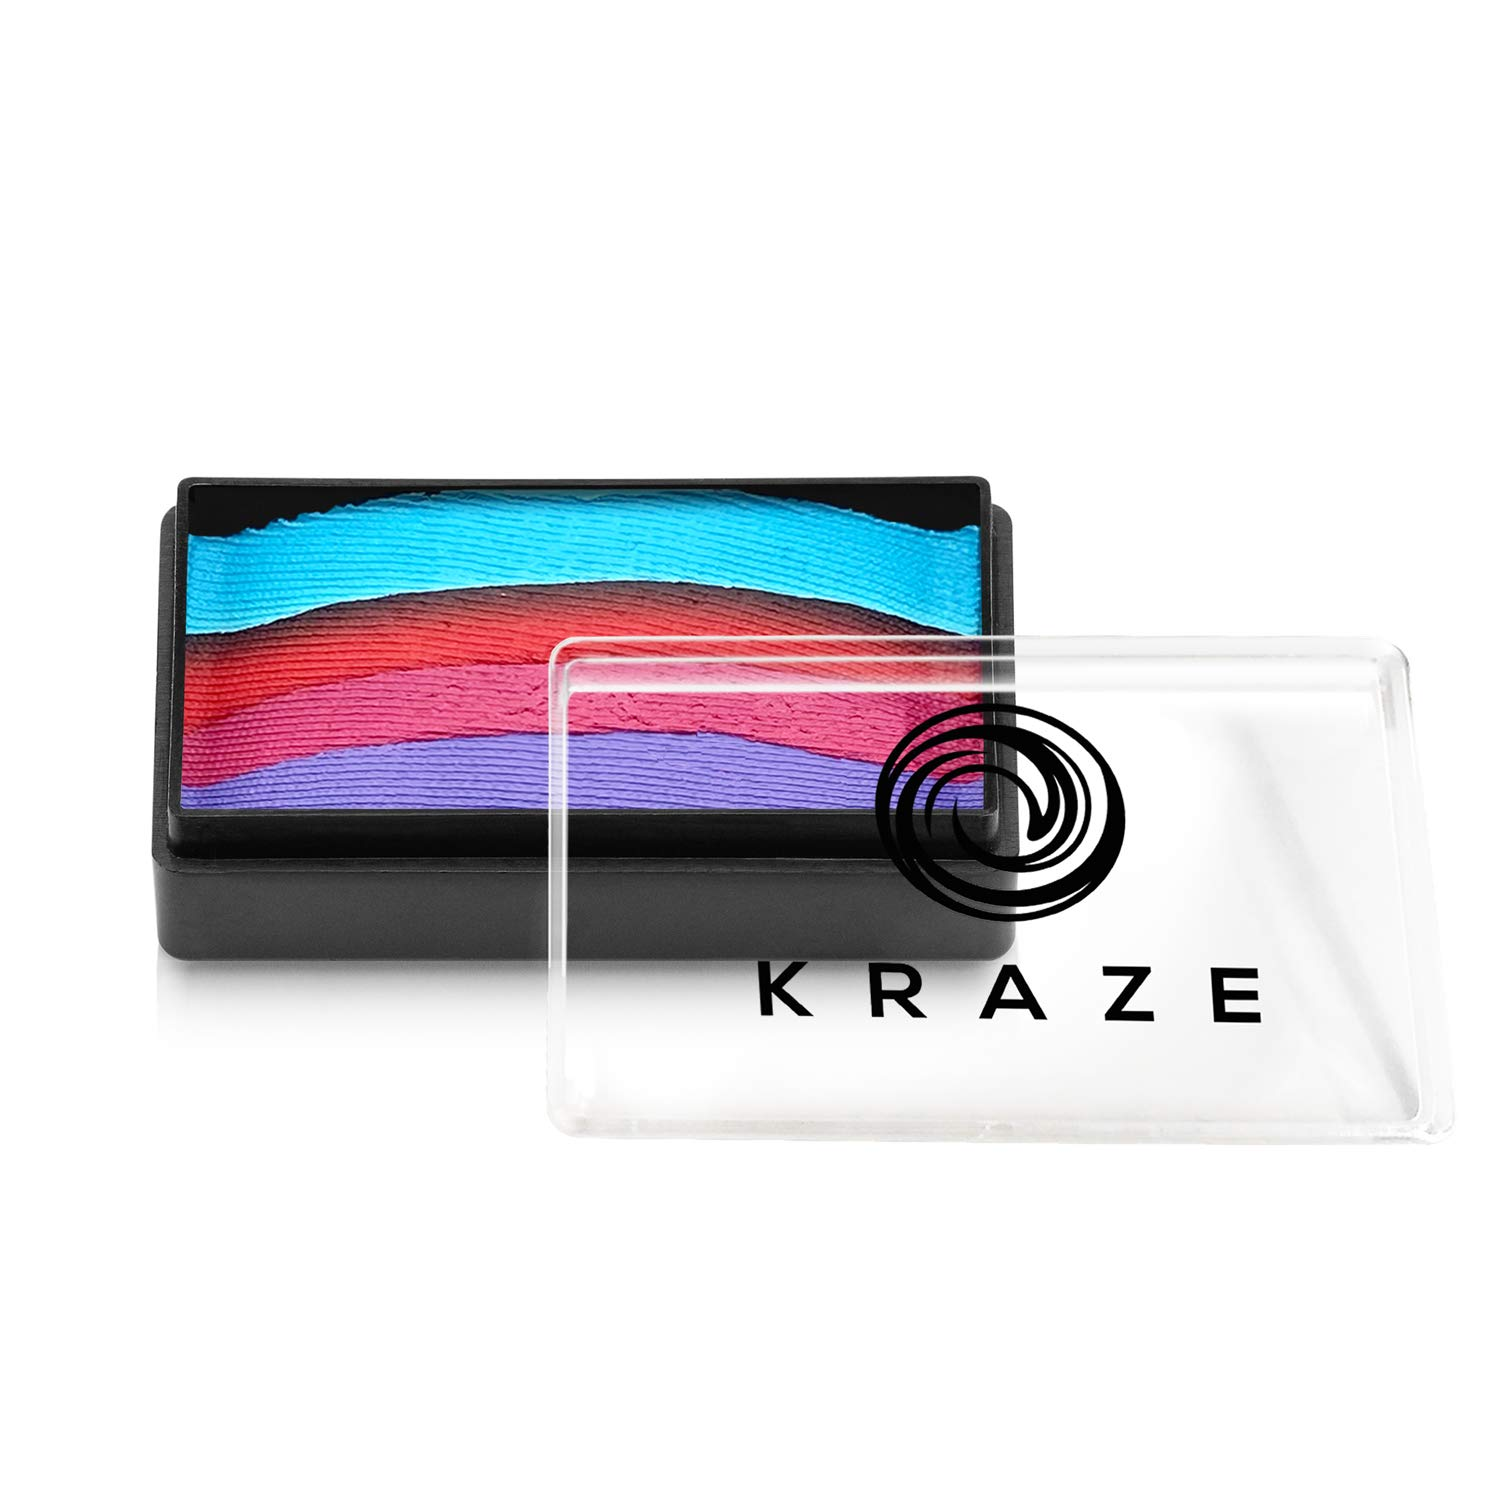 Kraze FX Dome Stroke - Fancy Girl (25 gm), Professional 1-Stroke Split Cake, Hypoallergenic, Non-Toxic, Water Activated Face & Body Painting Makeup Supplies for Sensitive Skin, Kid Safe, Adults